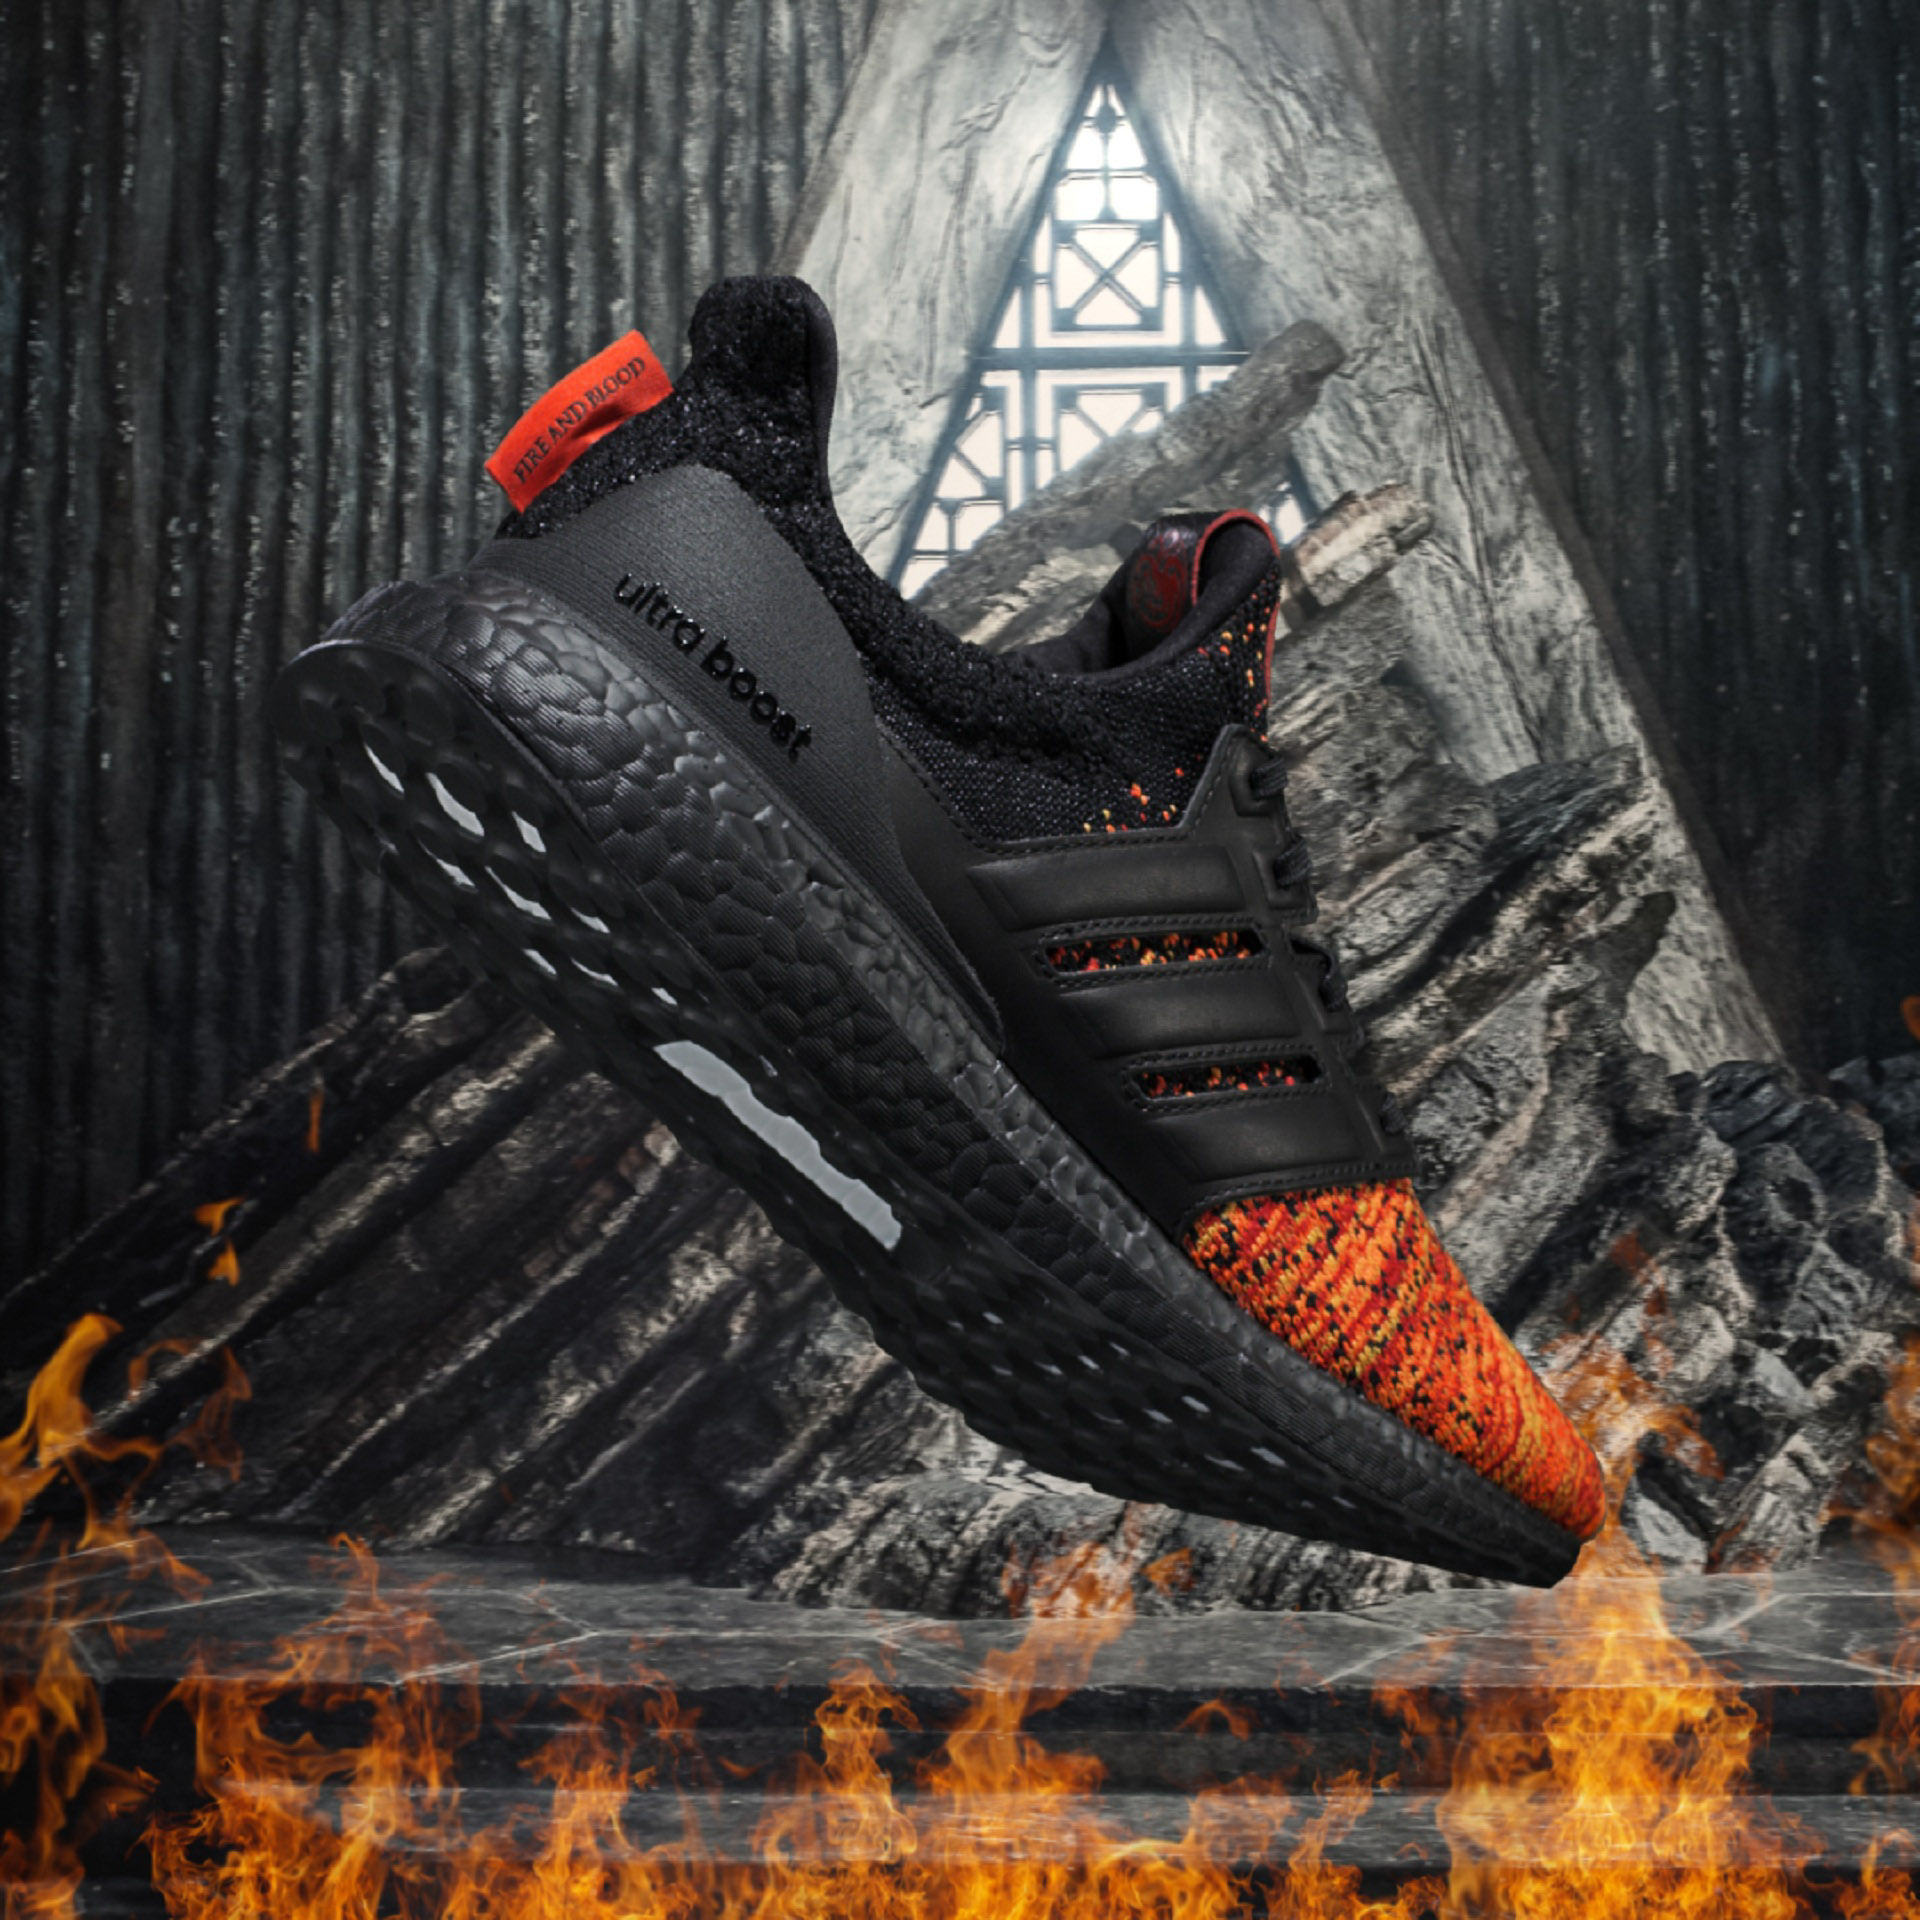 Game of Thrones x adidas UltraBOOST 10